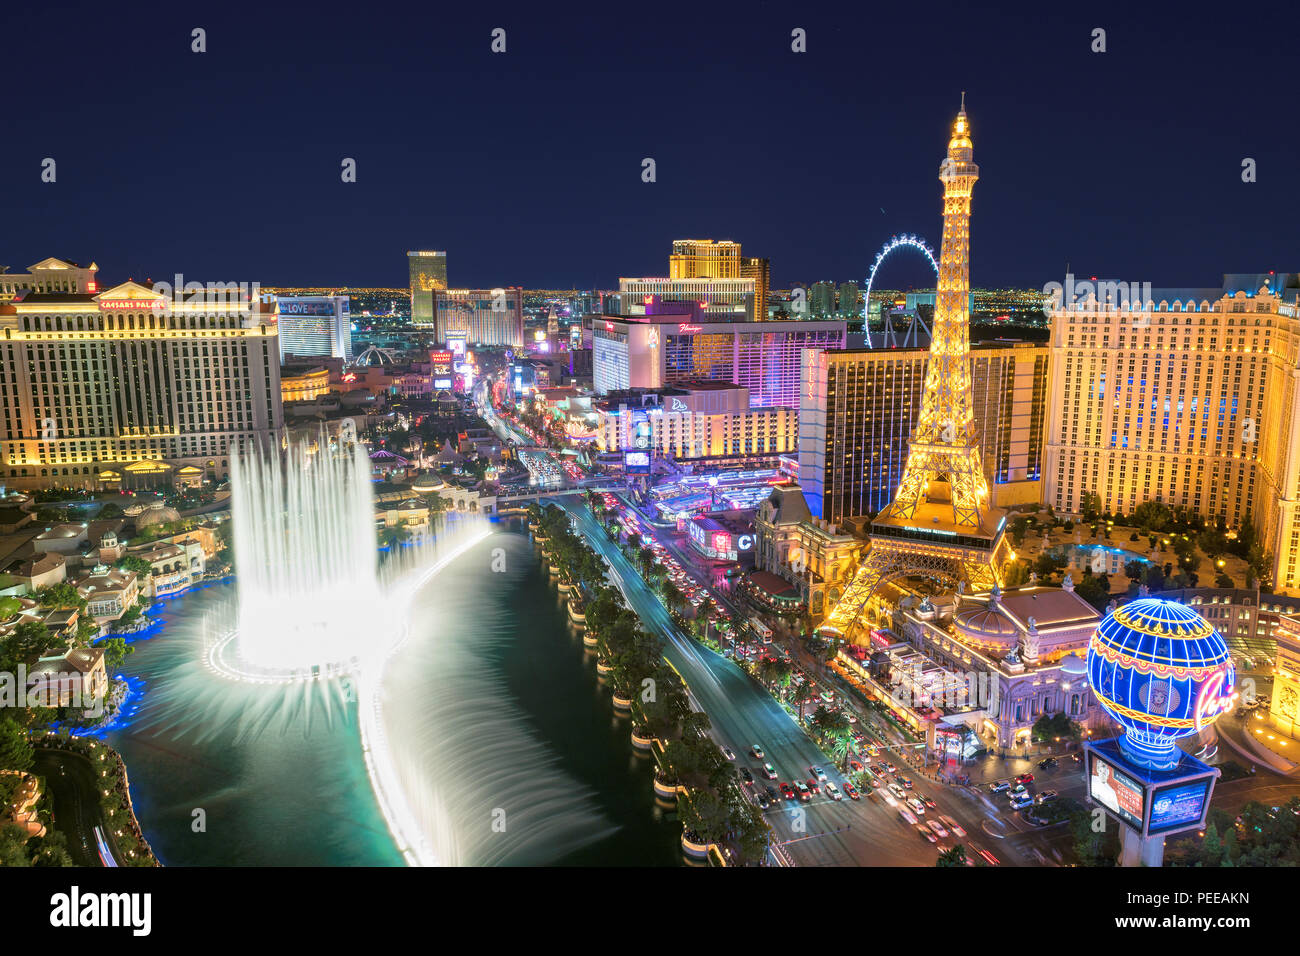 Las Vegas strip skyline - Stock Image